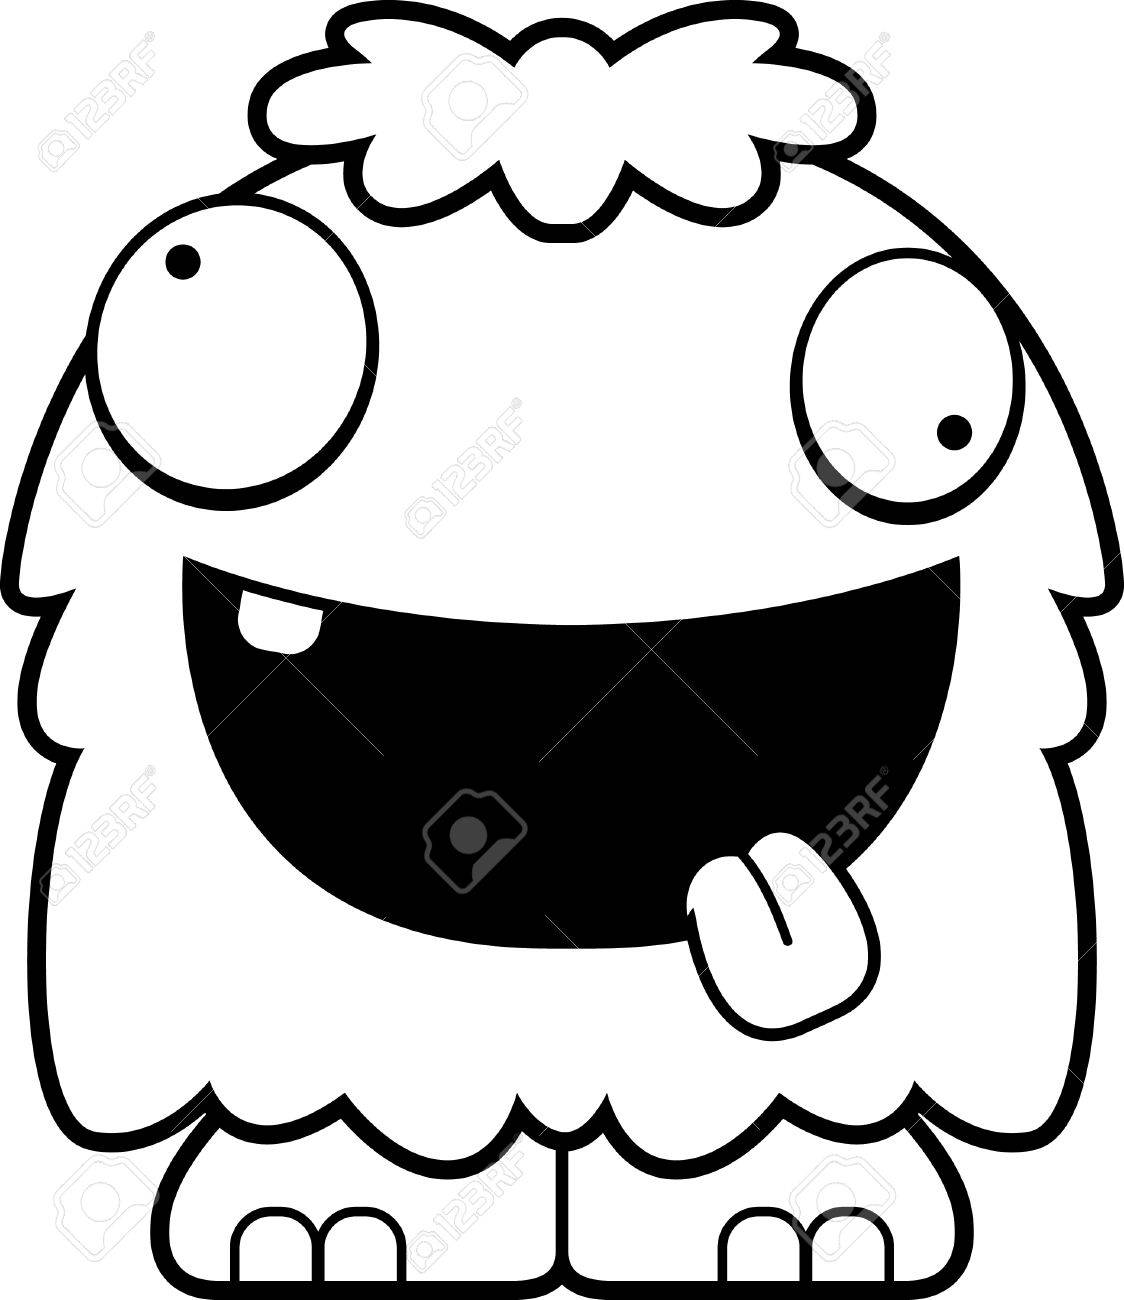 A Cartoon Illustration Of A Fluffy Monster Looking Crazy Royalty Free Cliparts Vectors And Stock Illustration Image 44863323